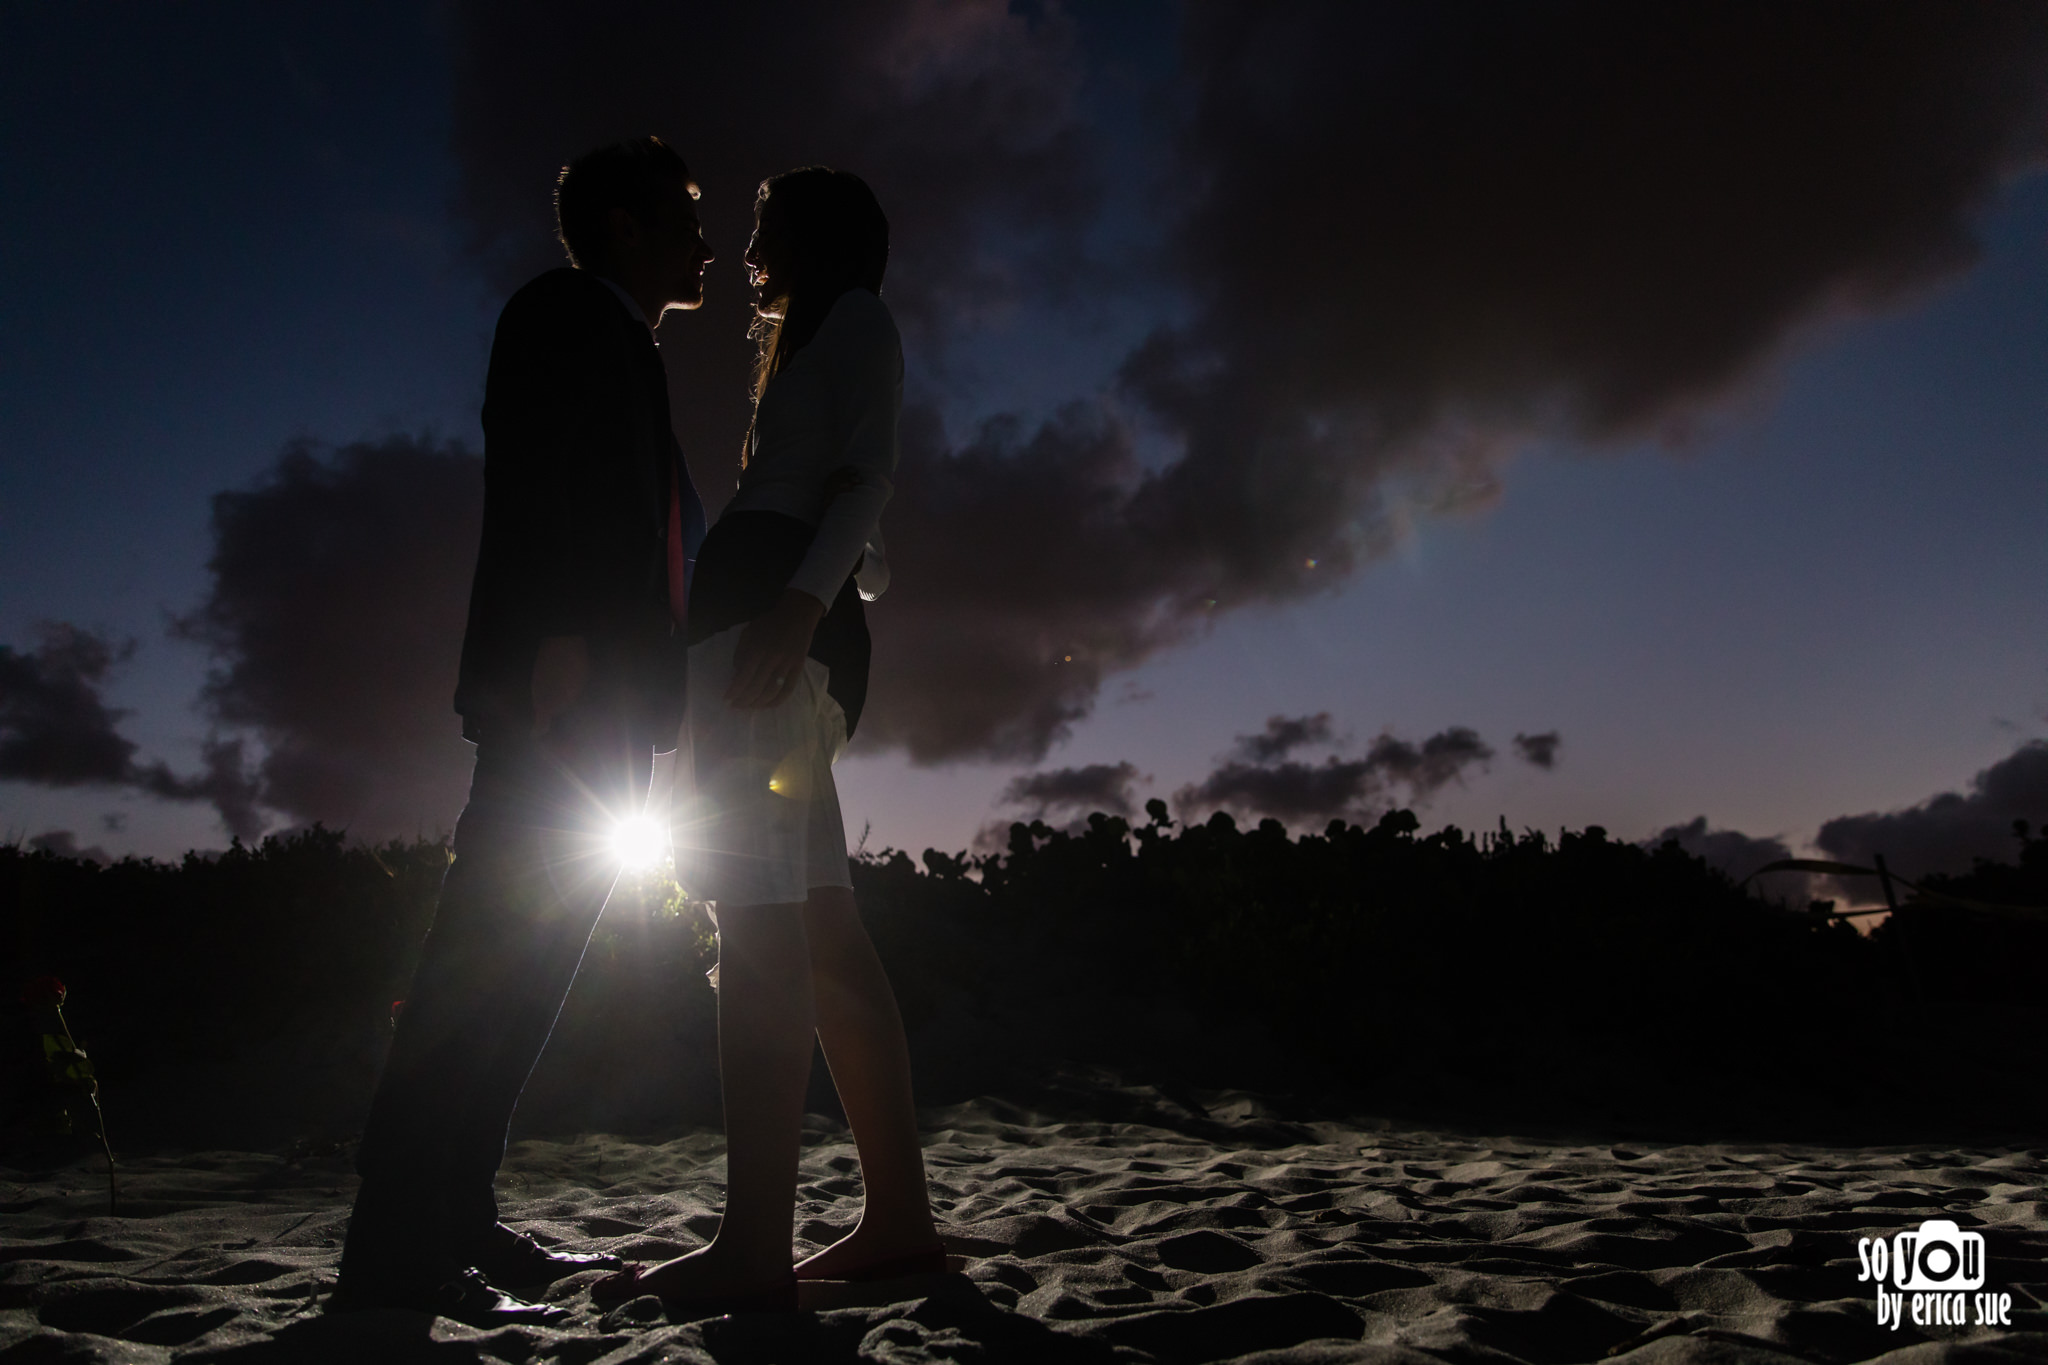 so-you-by-erica-sue-hollywood-fl-photographer-beach-engagement-flowers-candles-5342.jpg